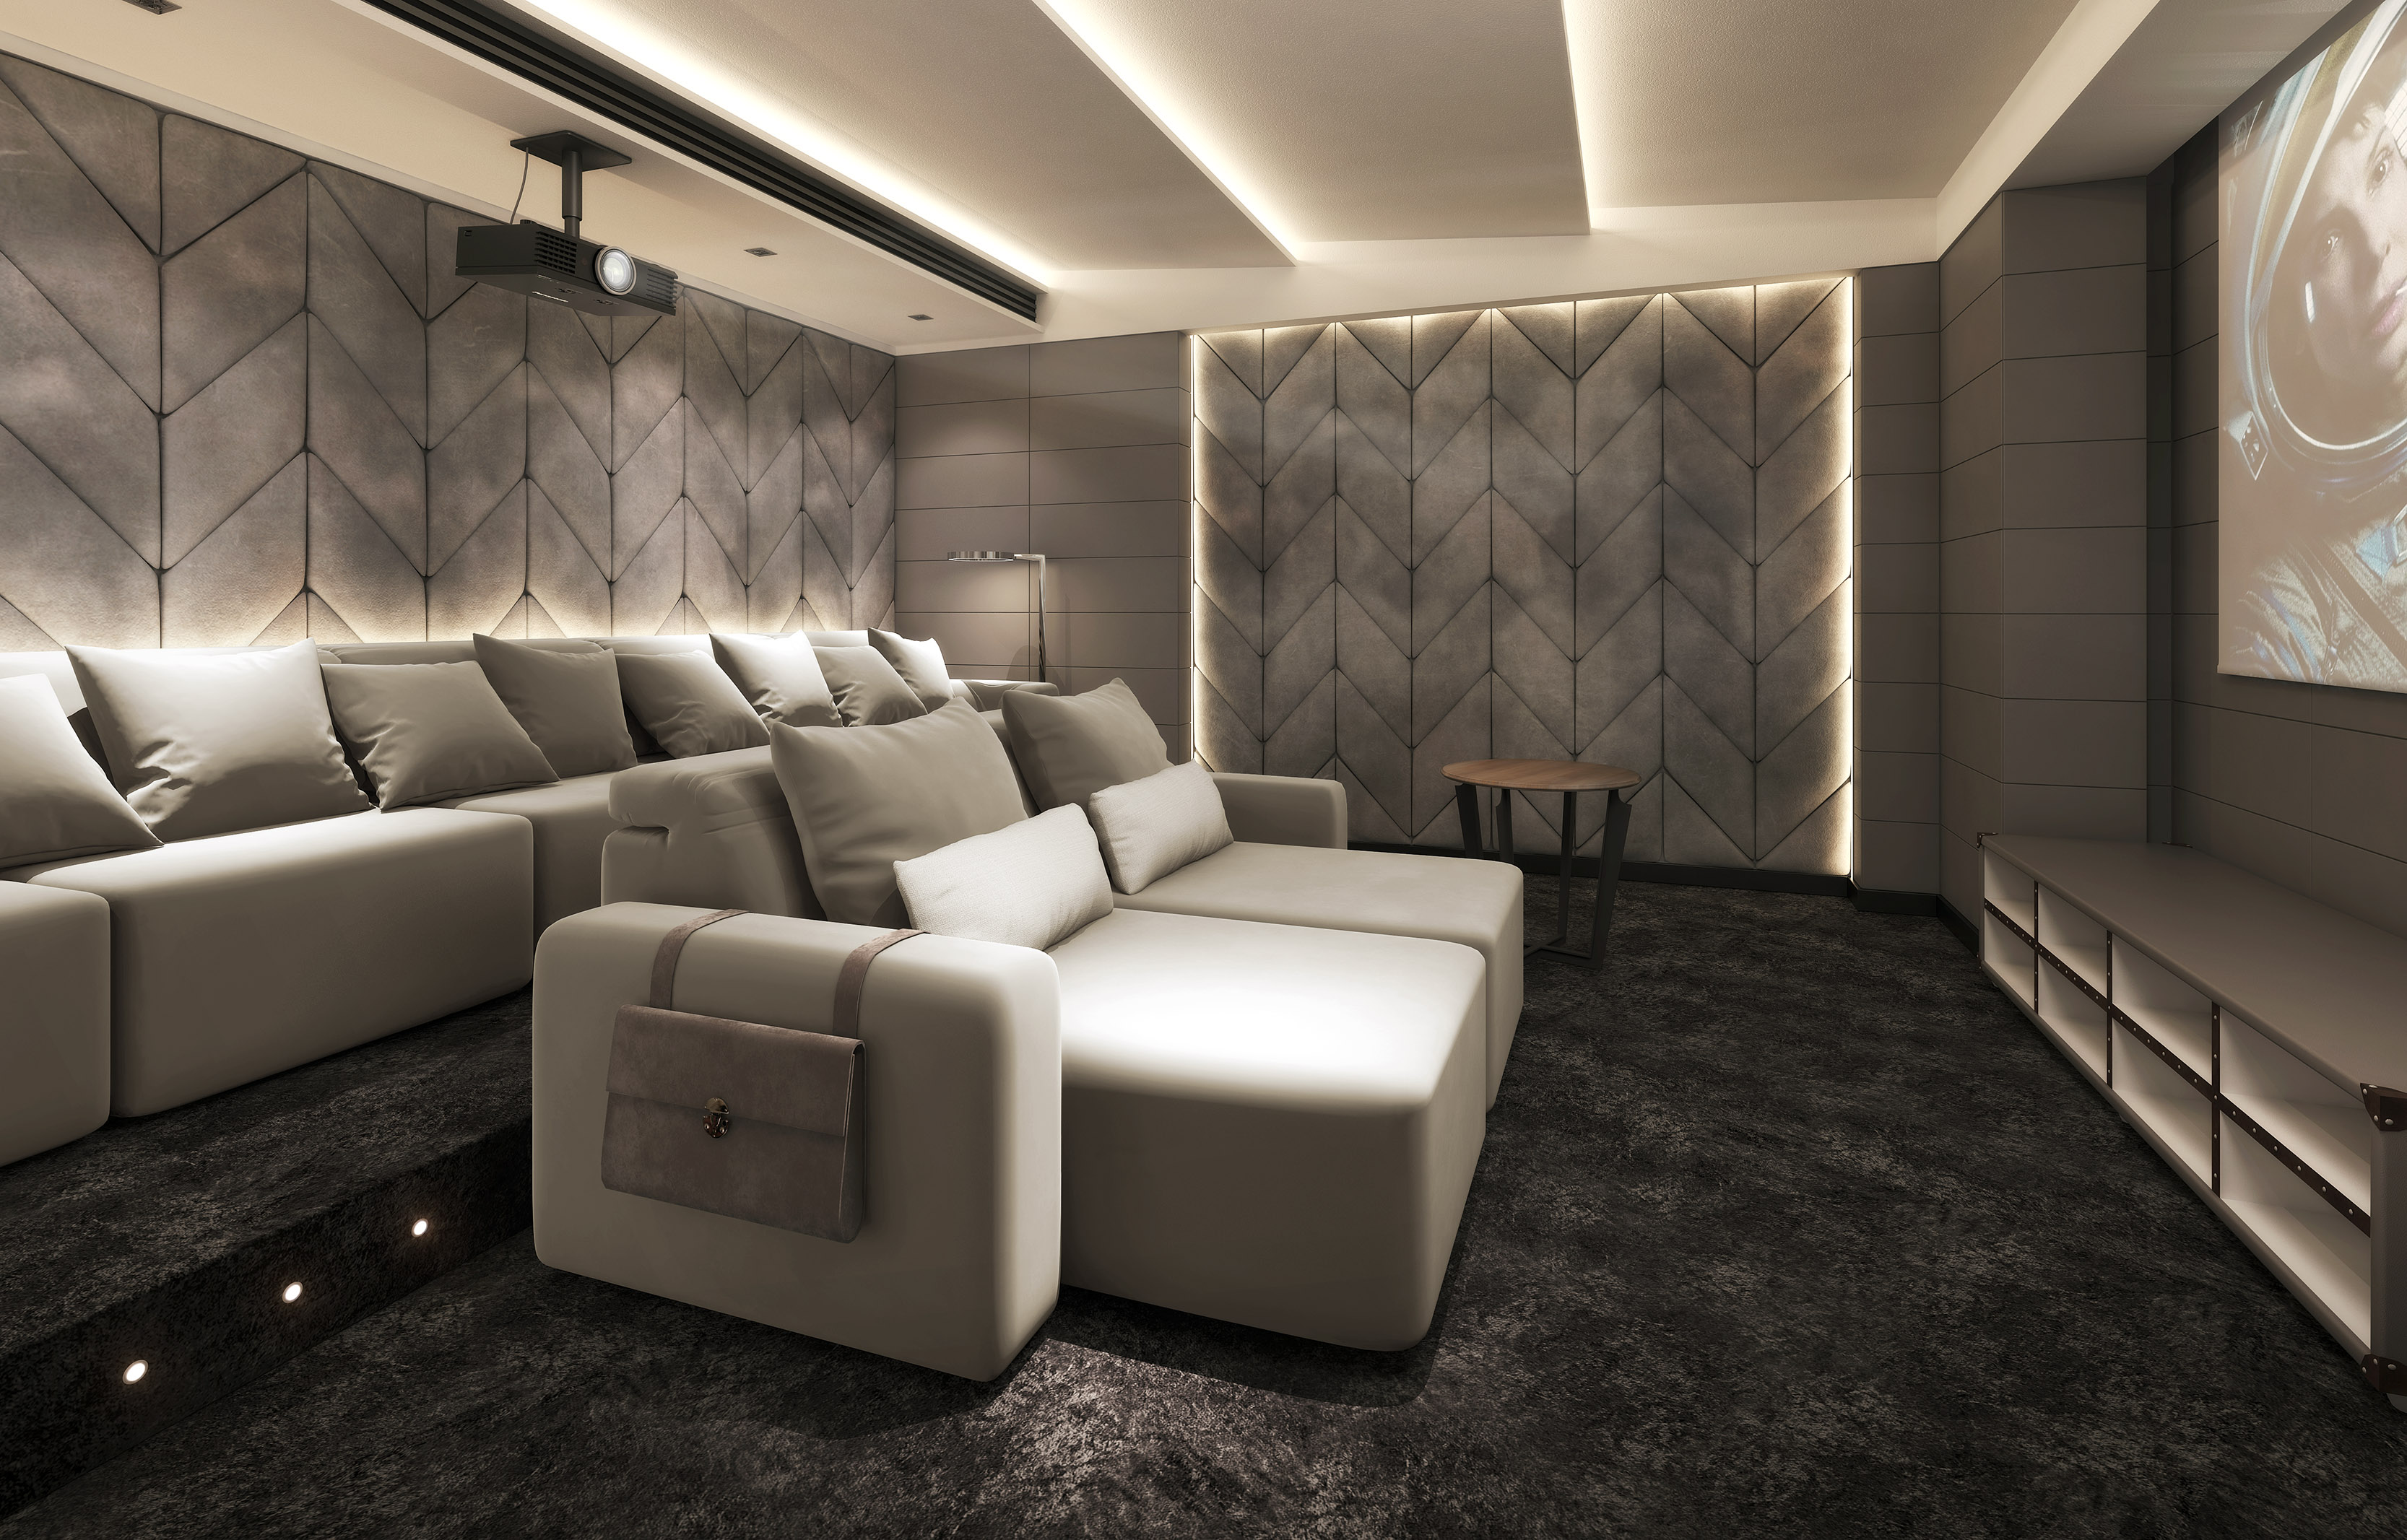 Luxury Home Cinema Seating Home Cinema Installation Home Cinema Design The Perfect Home